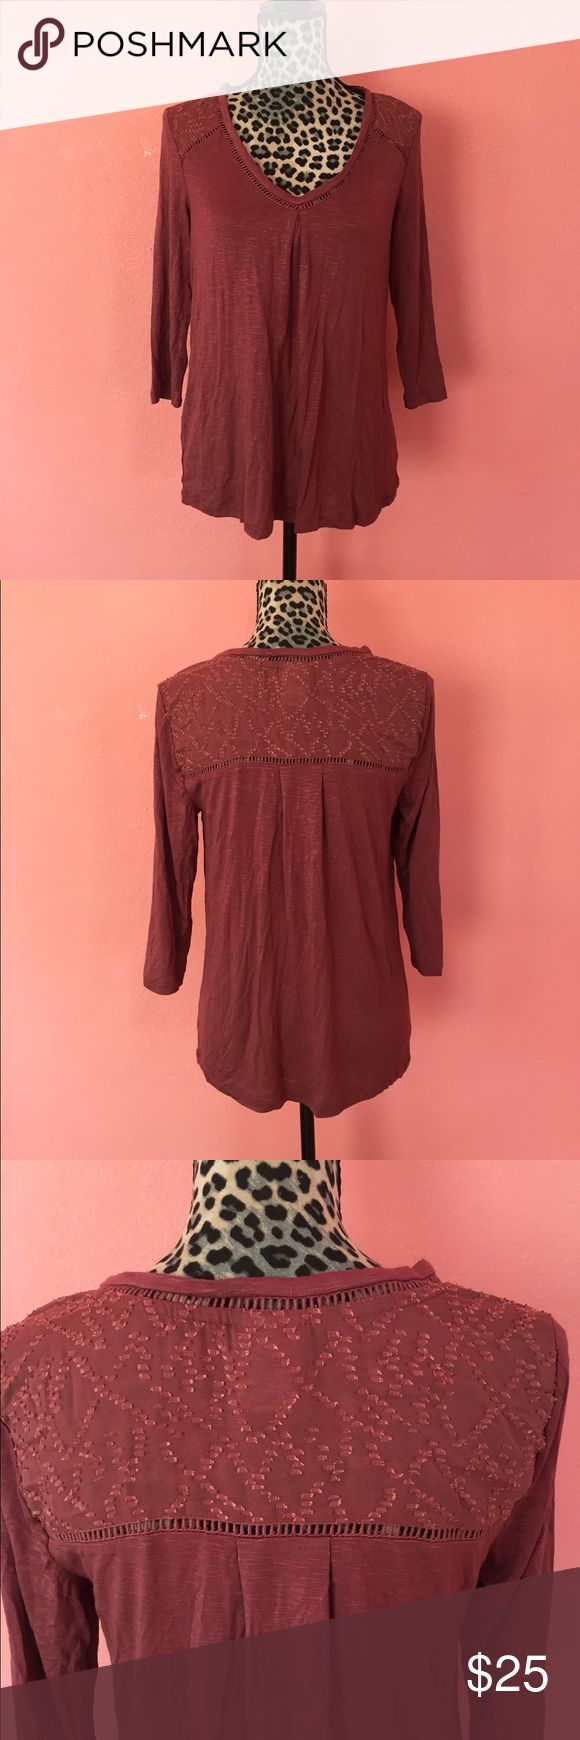 NWOT Anthropologie Dolan Mauve Maisy Knit Tee S • Dolan Left Coast Collection's , brand sold at Anthropologie stores, Maisy Tee in size Small. • Brand new with no retail tags attached. • No flaws (no smells, tears, or holes) • Top features 3/4 sleeves, contrasting dotted yoke neckline, and small cutout pattern along neckline. • Fabric is very soft, almost pajama like. • Plenty of stretch, very flowy. • No longer sold in retail stores!   Check out my other listings for more deals!!! Feel…